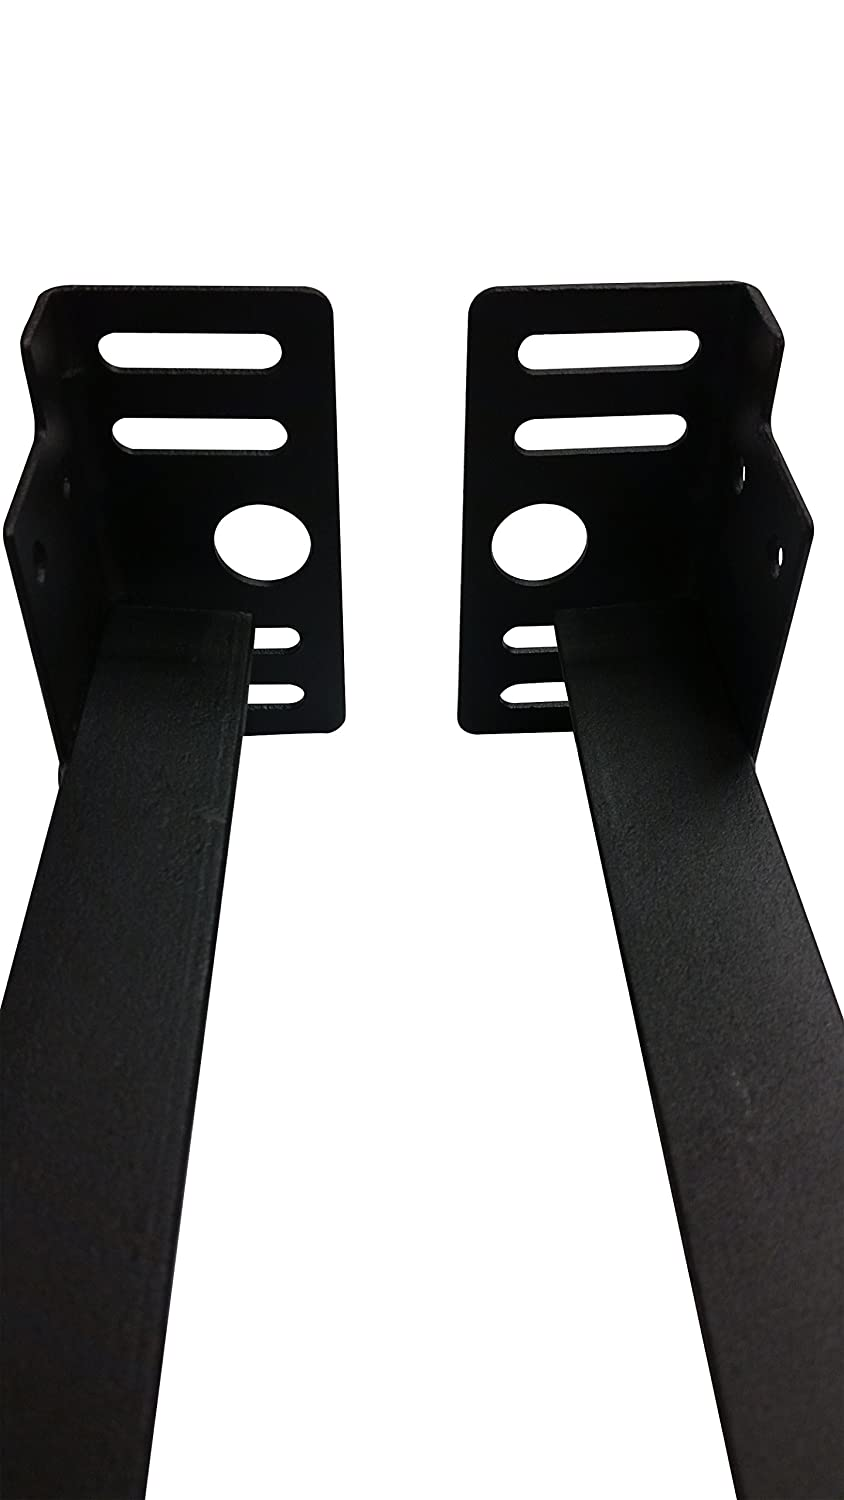 Twin//Full//Queen//King Kings Brand Furniture Bed Frame Footboard Extension Brackets Set Attachment Kit